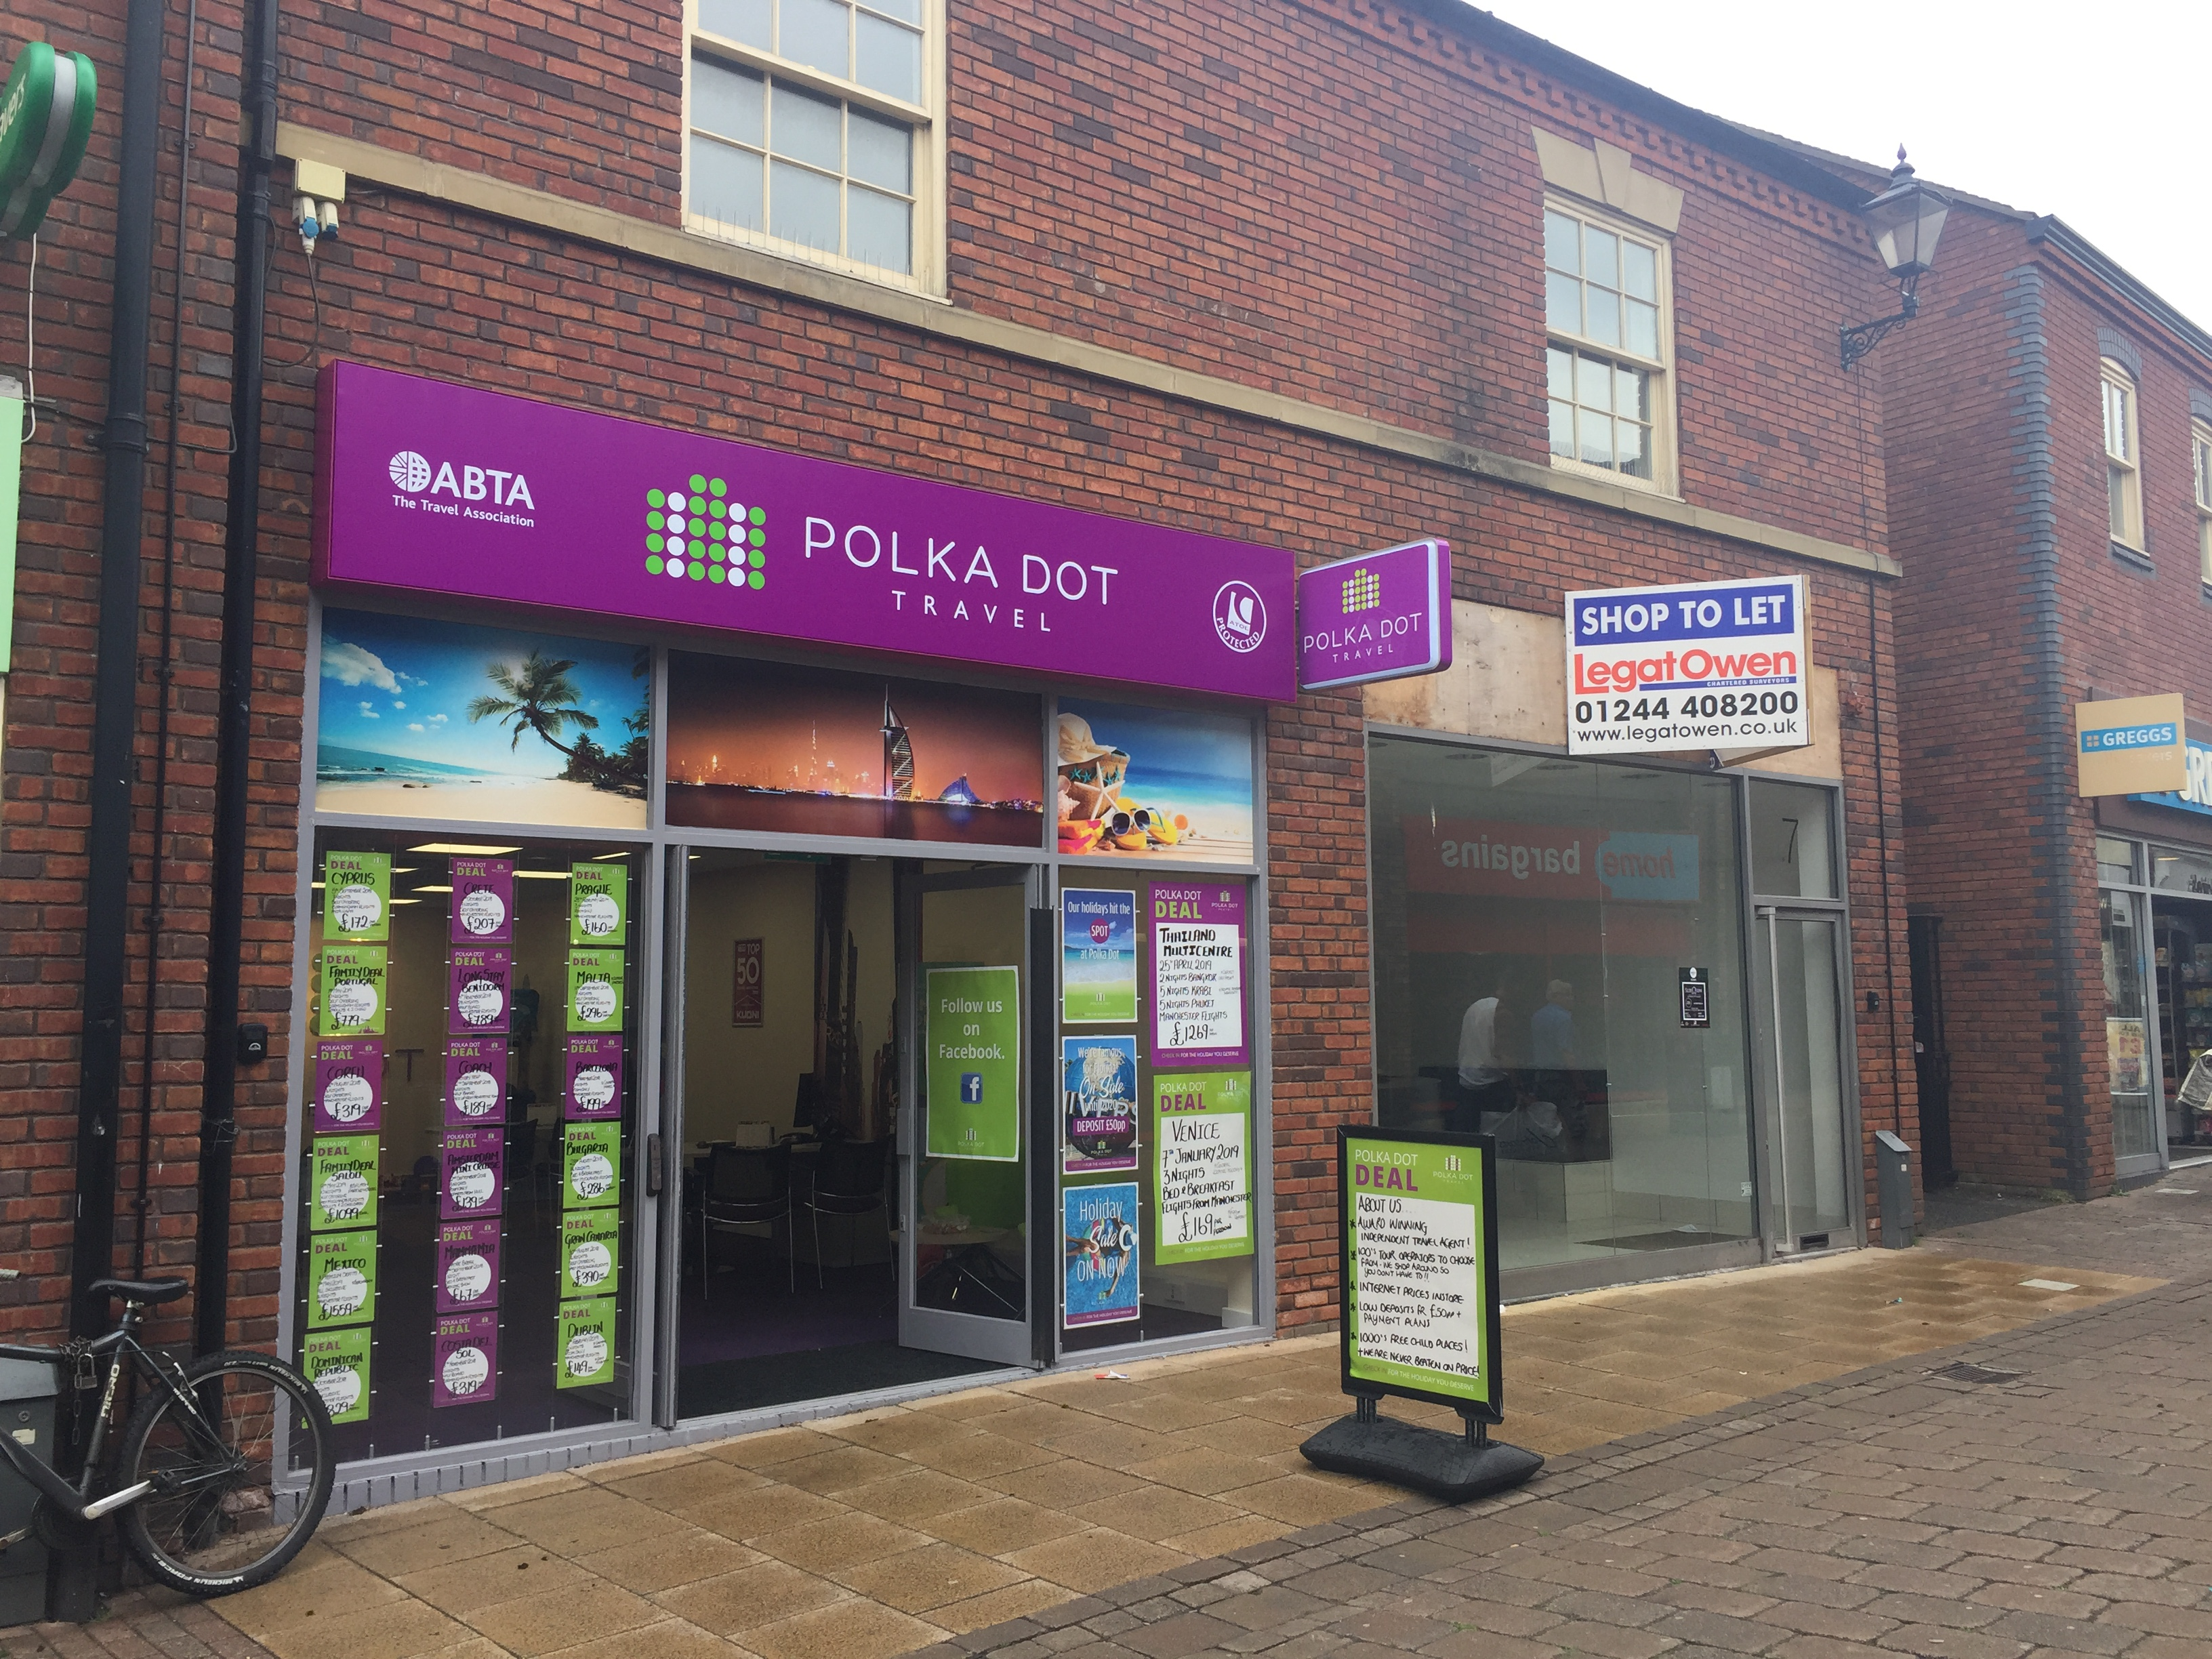 99d8015bdc4a3 Newcastle-Under-Lyme Welcomes Polka Dot Travel To Castle Walk ...